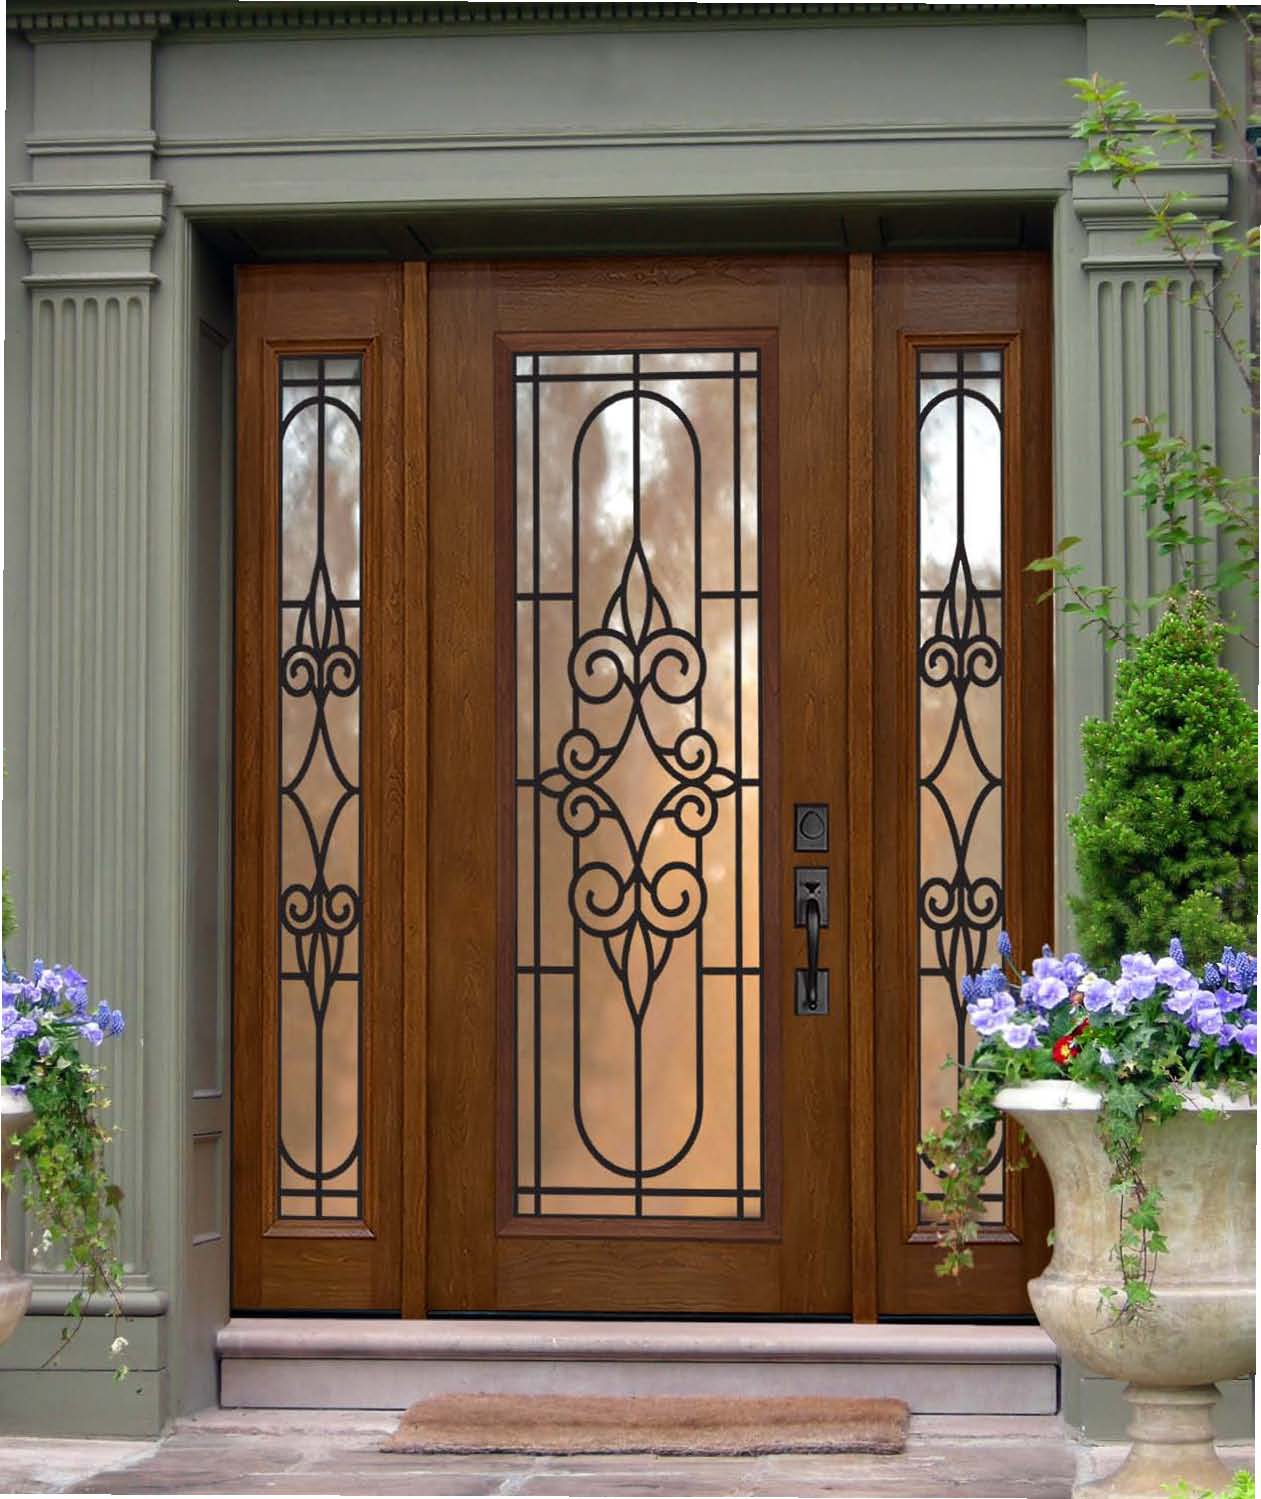 Fiberglass exterior doors with sidelights are functional are elegant